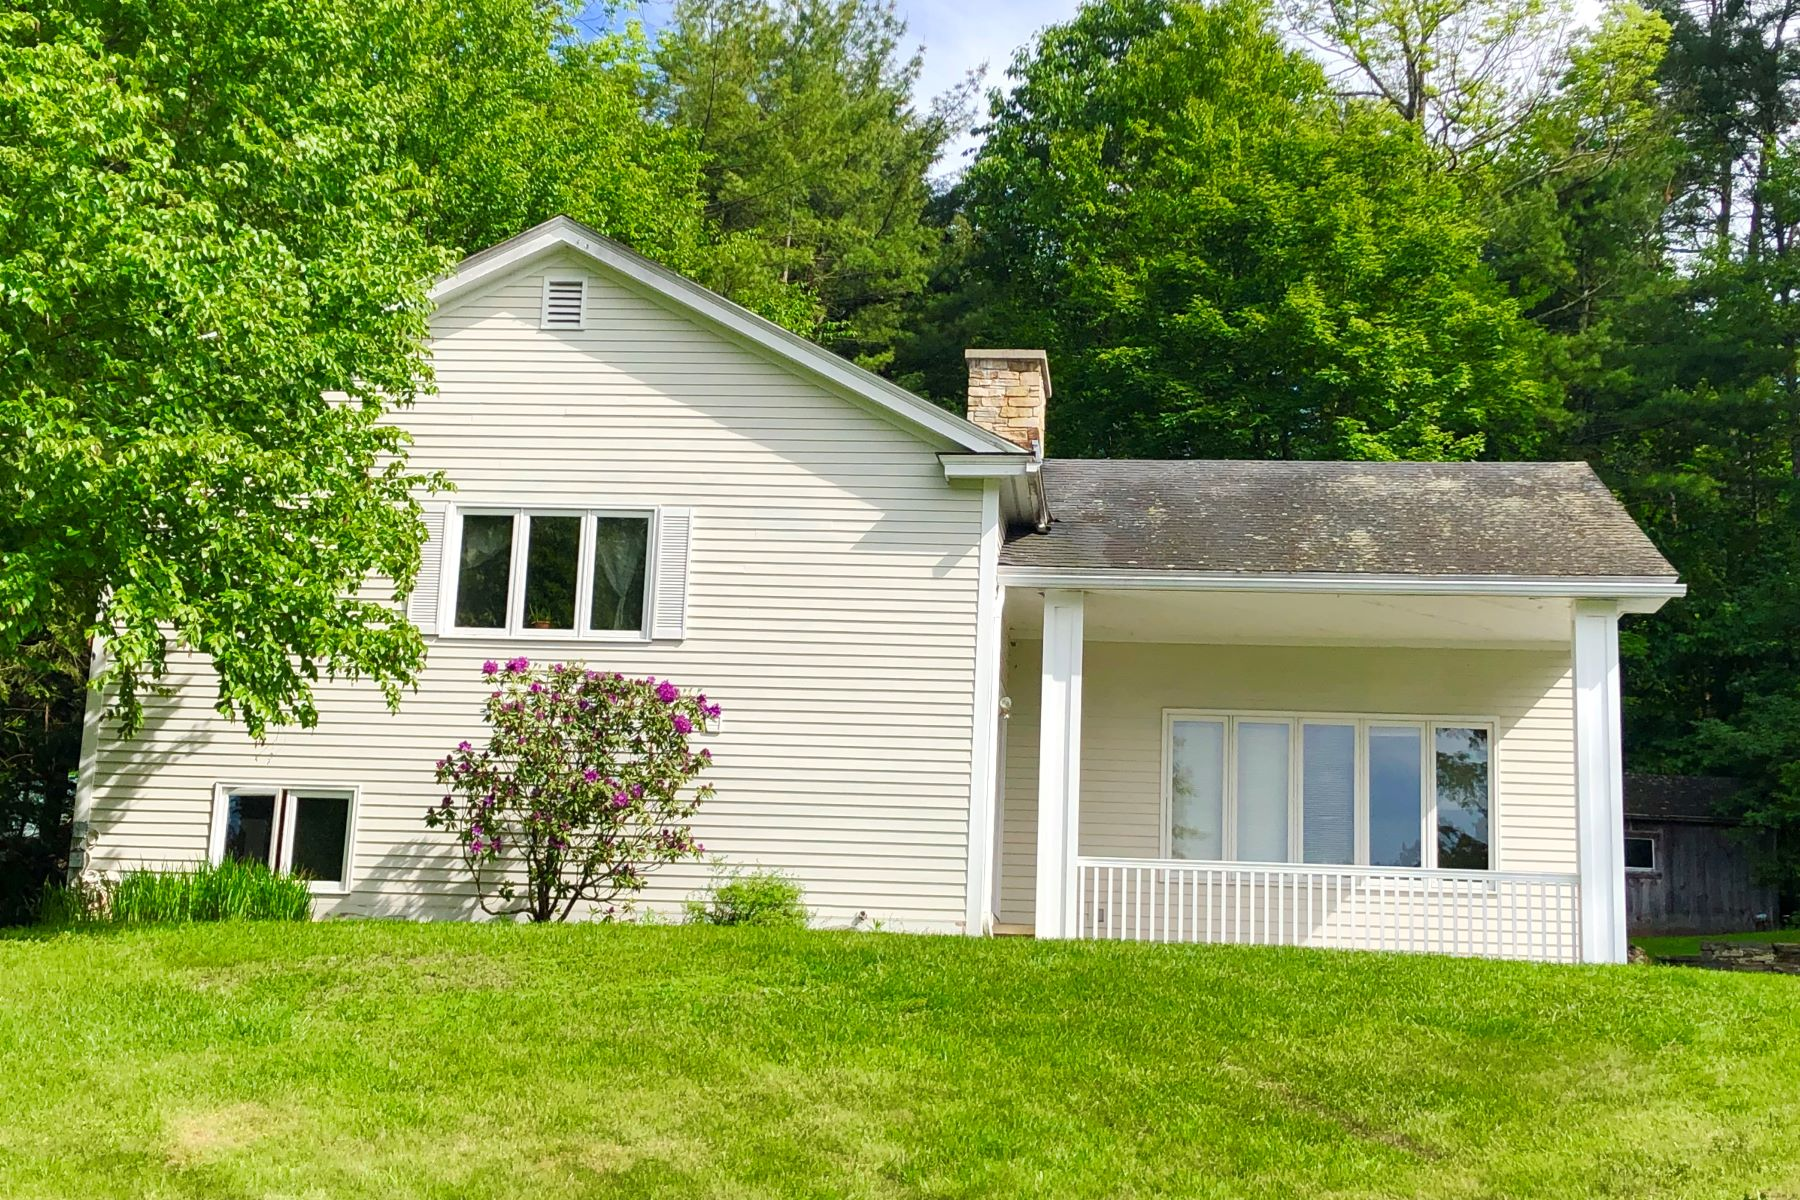 Single Family Homes for Active at Three Bedroom Split Level Home in Orford 46 Sawyer Brook Rd Orford, New Hampshire 03777 United States